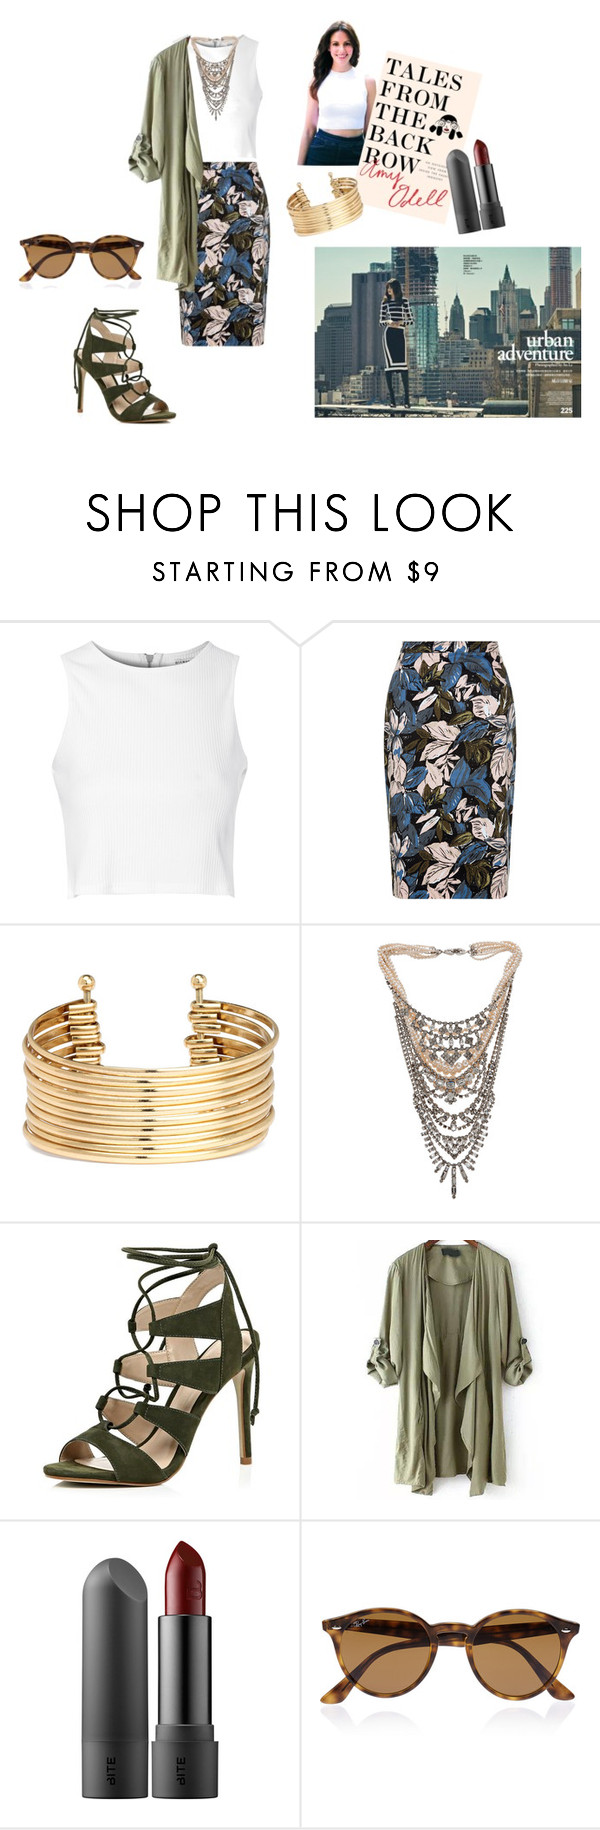 """""""Tales From The Backseat"""" by zoeebrumer ❤ liked on Polyvore featuring Glamorous, H&M, Tom Binns, River Island, Ray-Ban, StreetStyle and talesfromthebackrow"""